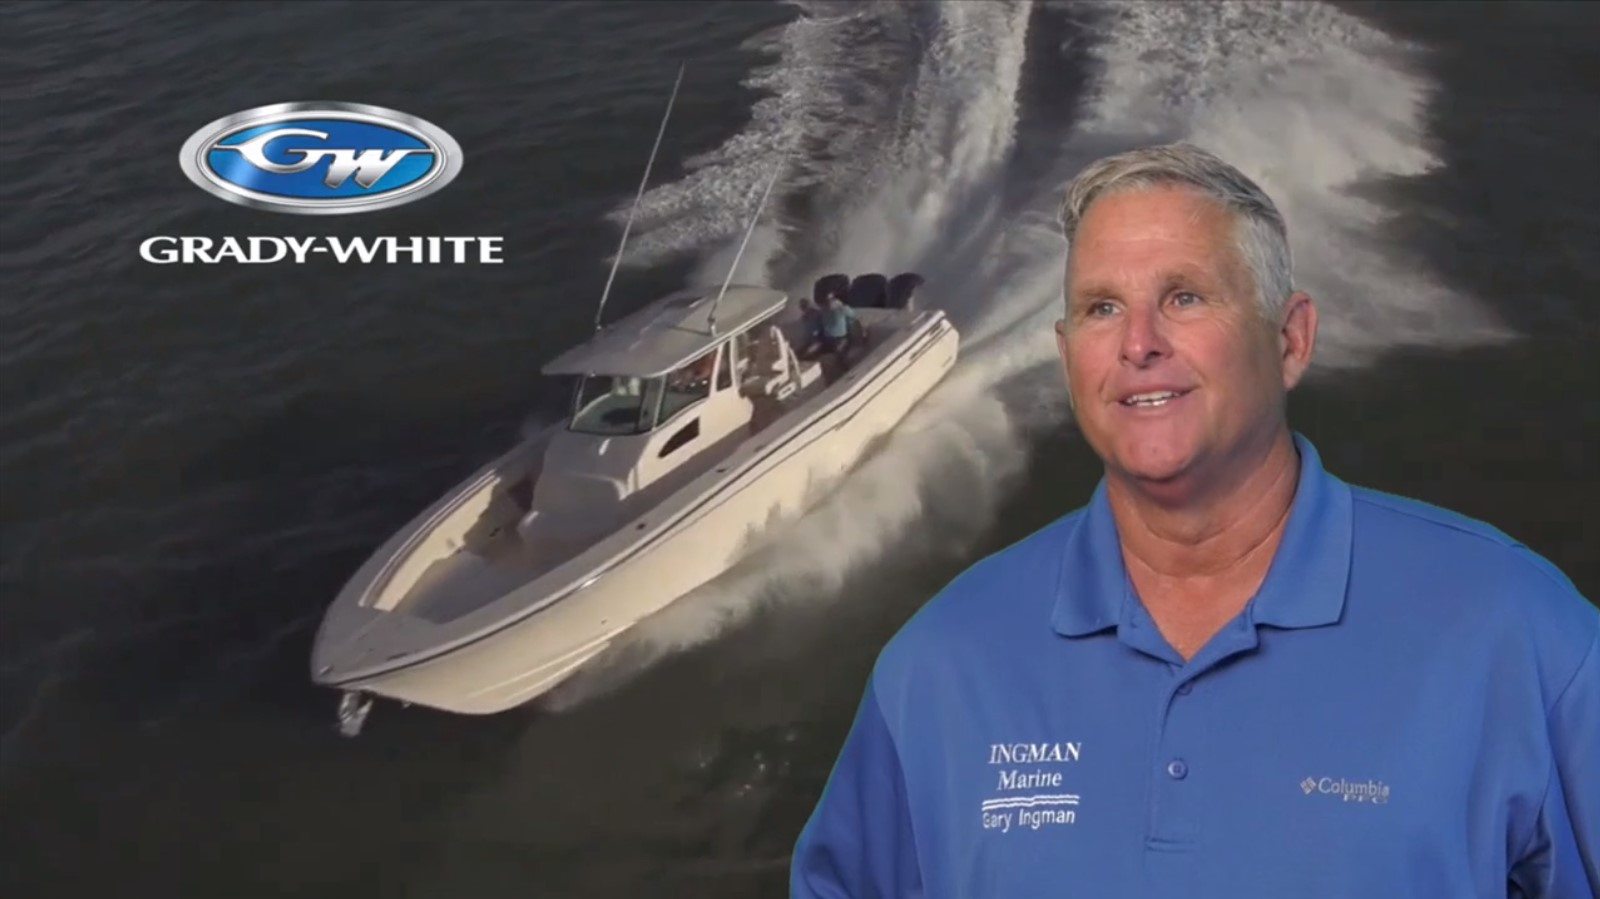 2019 Ingman Marine (Video) On Boca TV